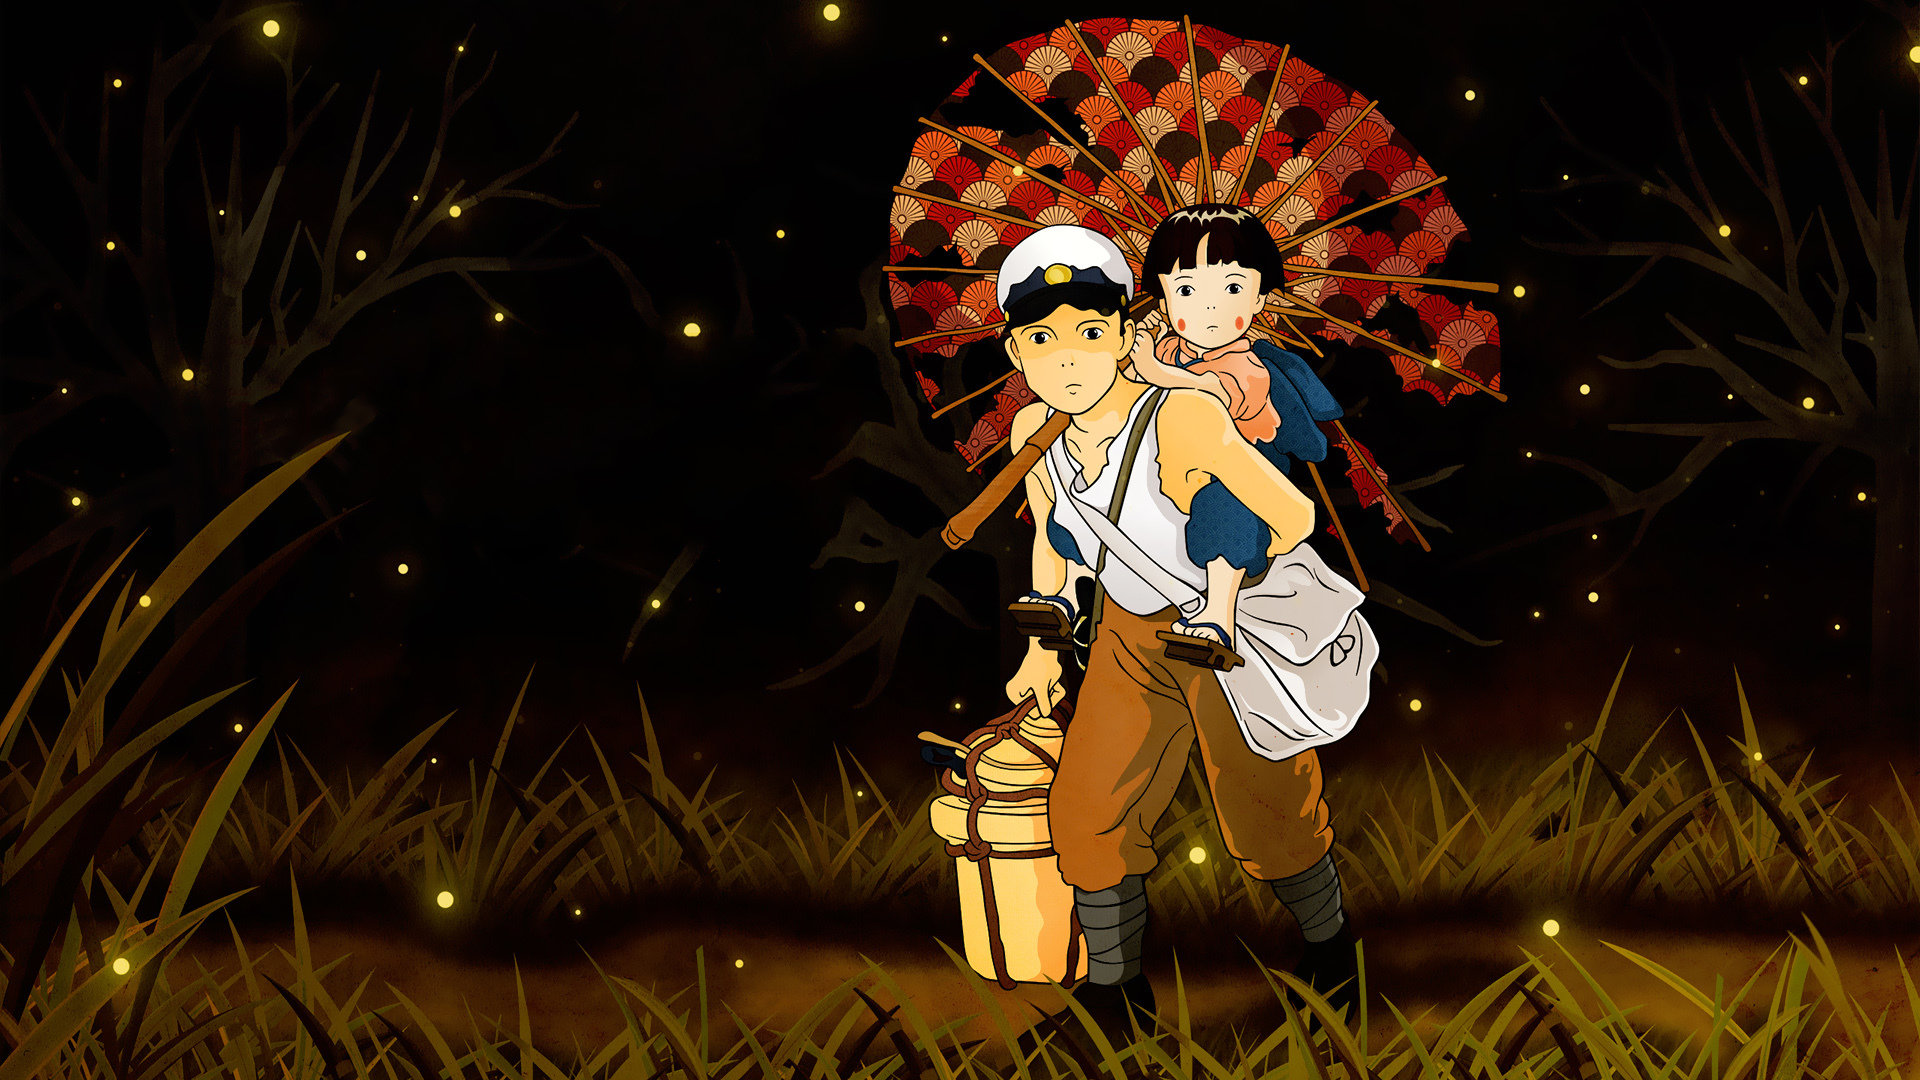 Grave Of The Fireflies Wallpapers Hd For Desktop Backgrounds